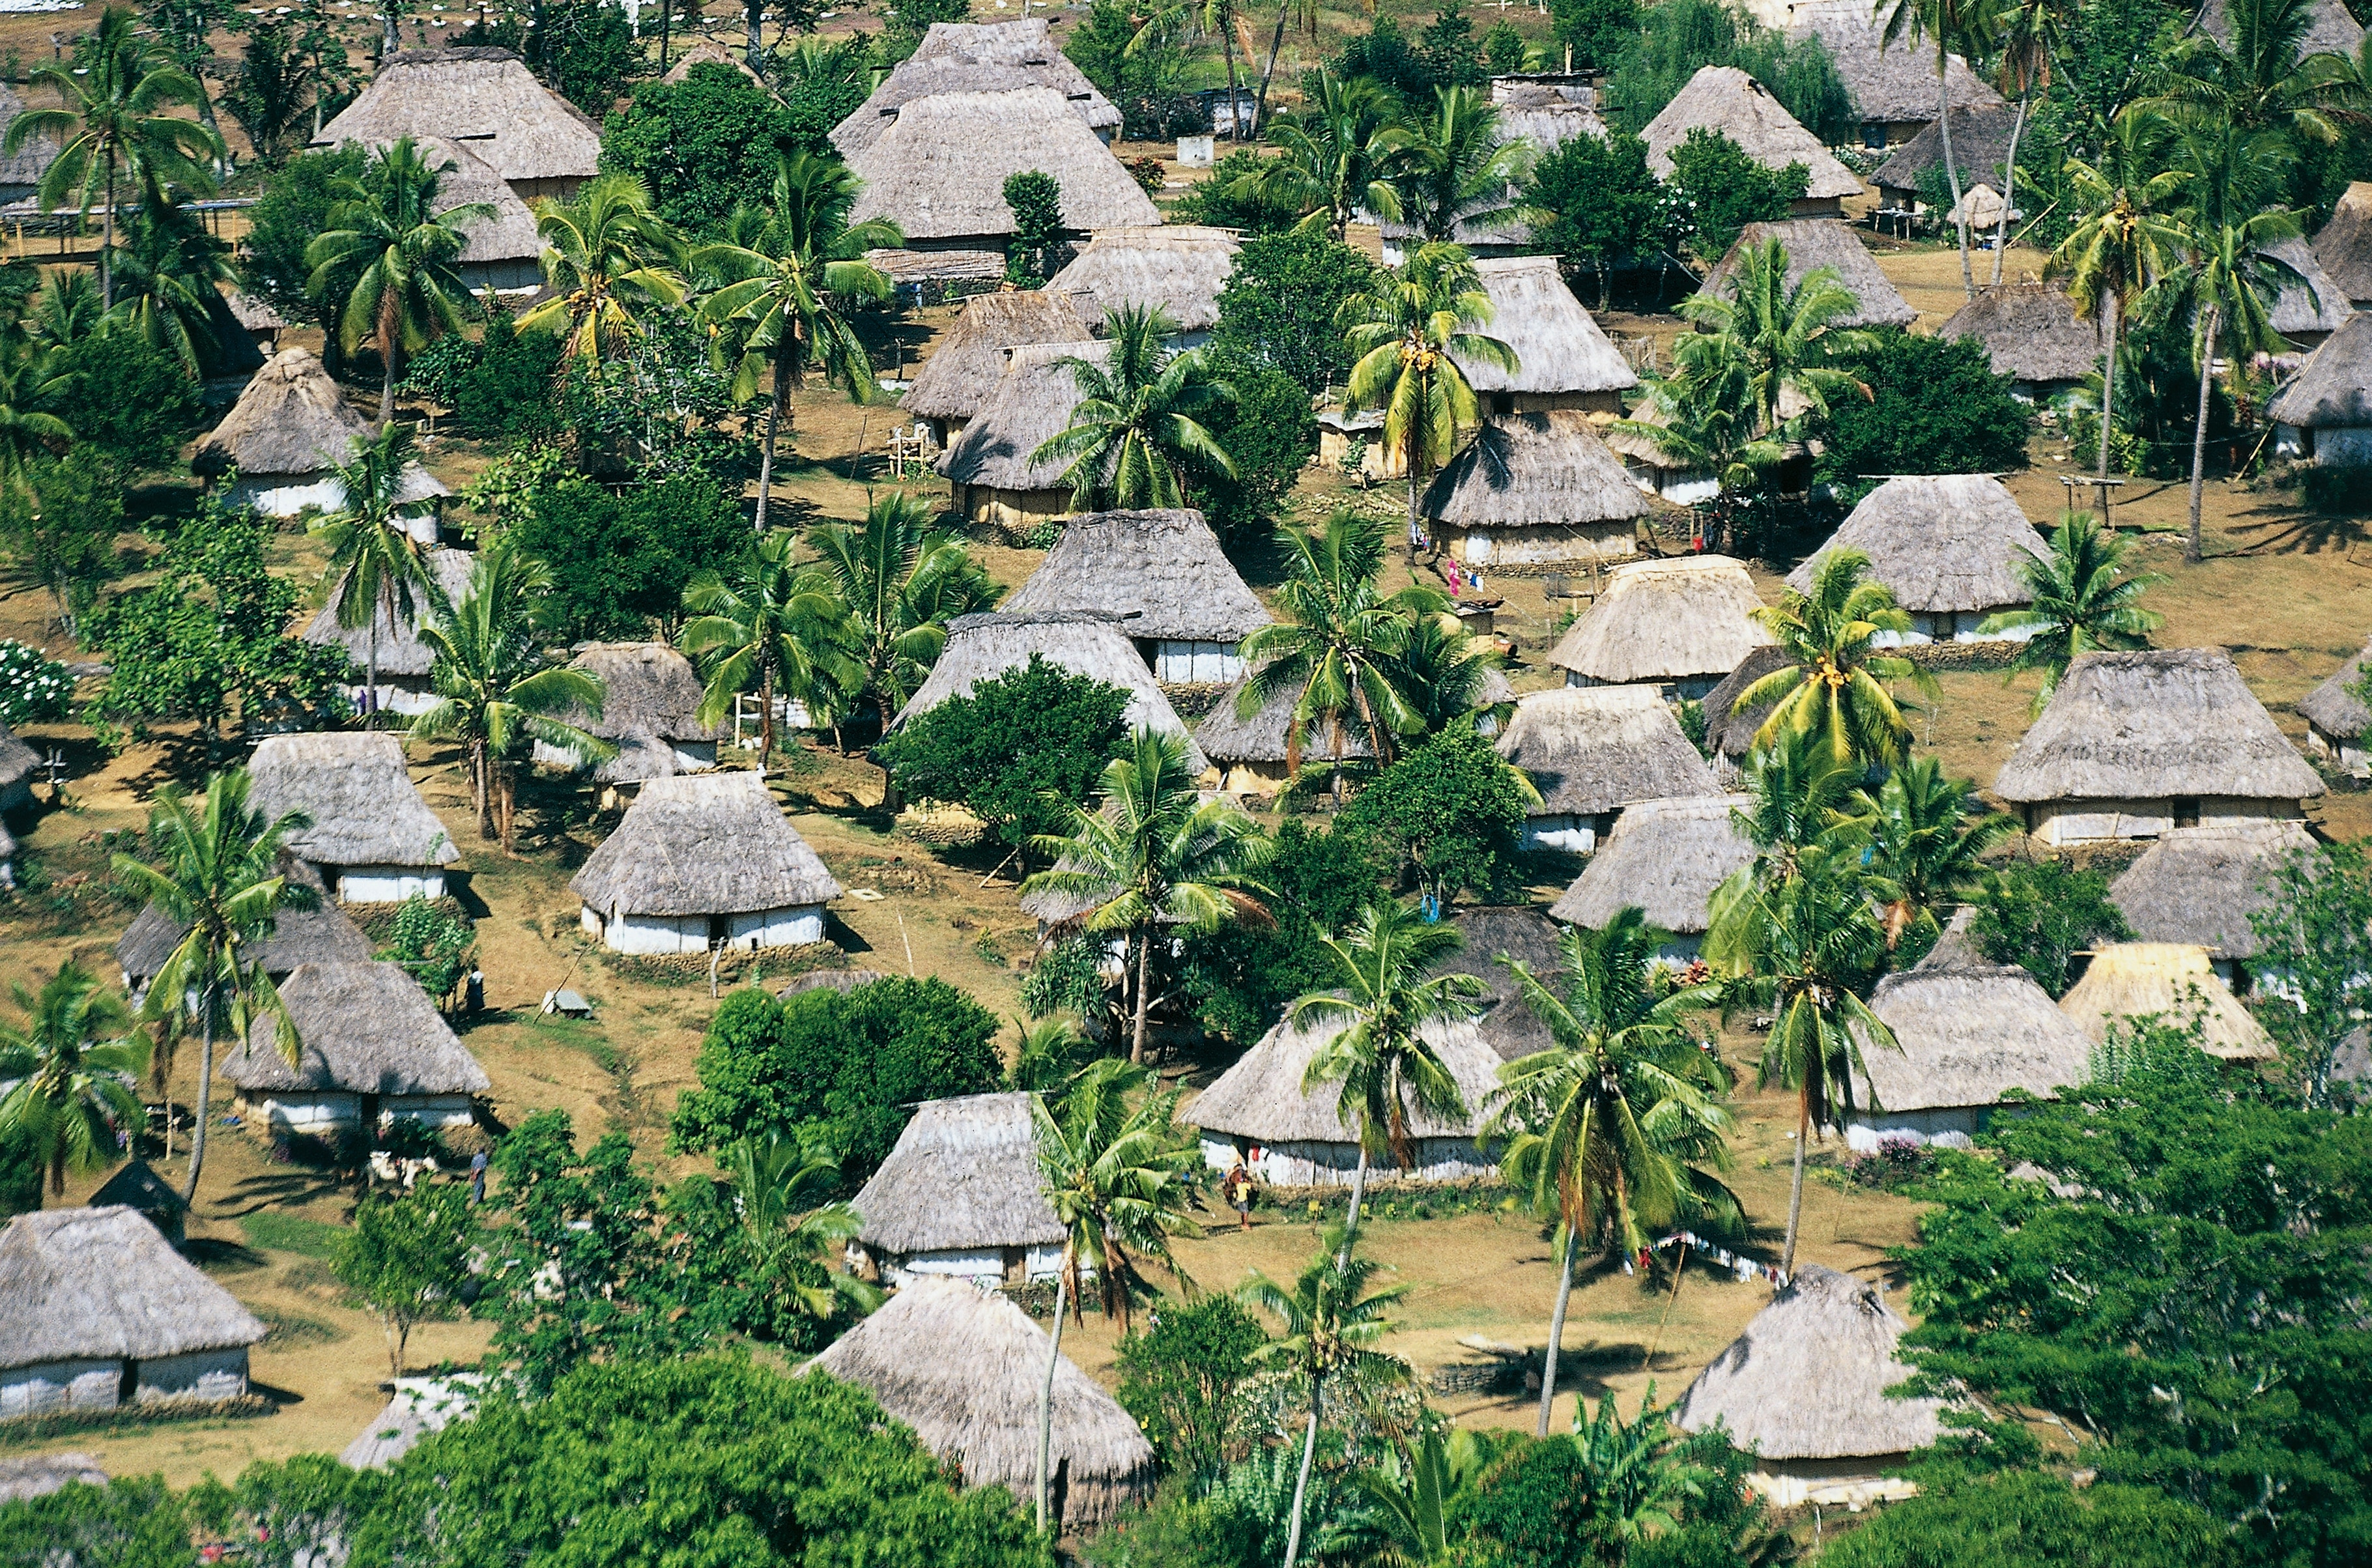 Traditional Fijian thatched huts